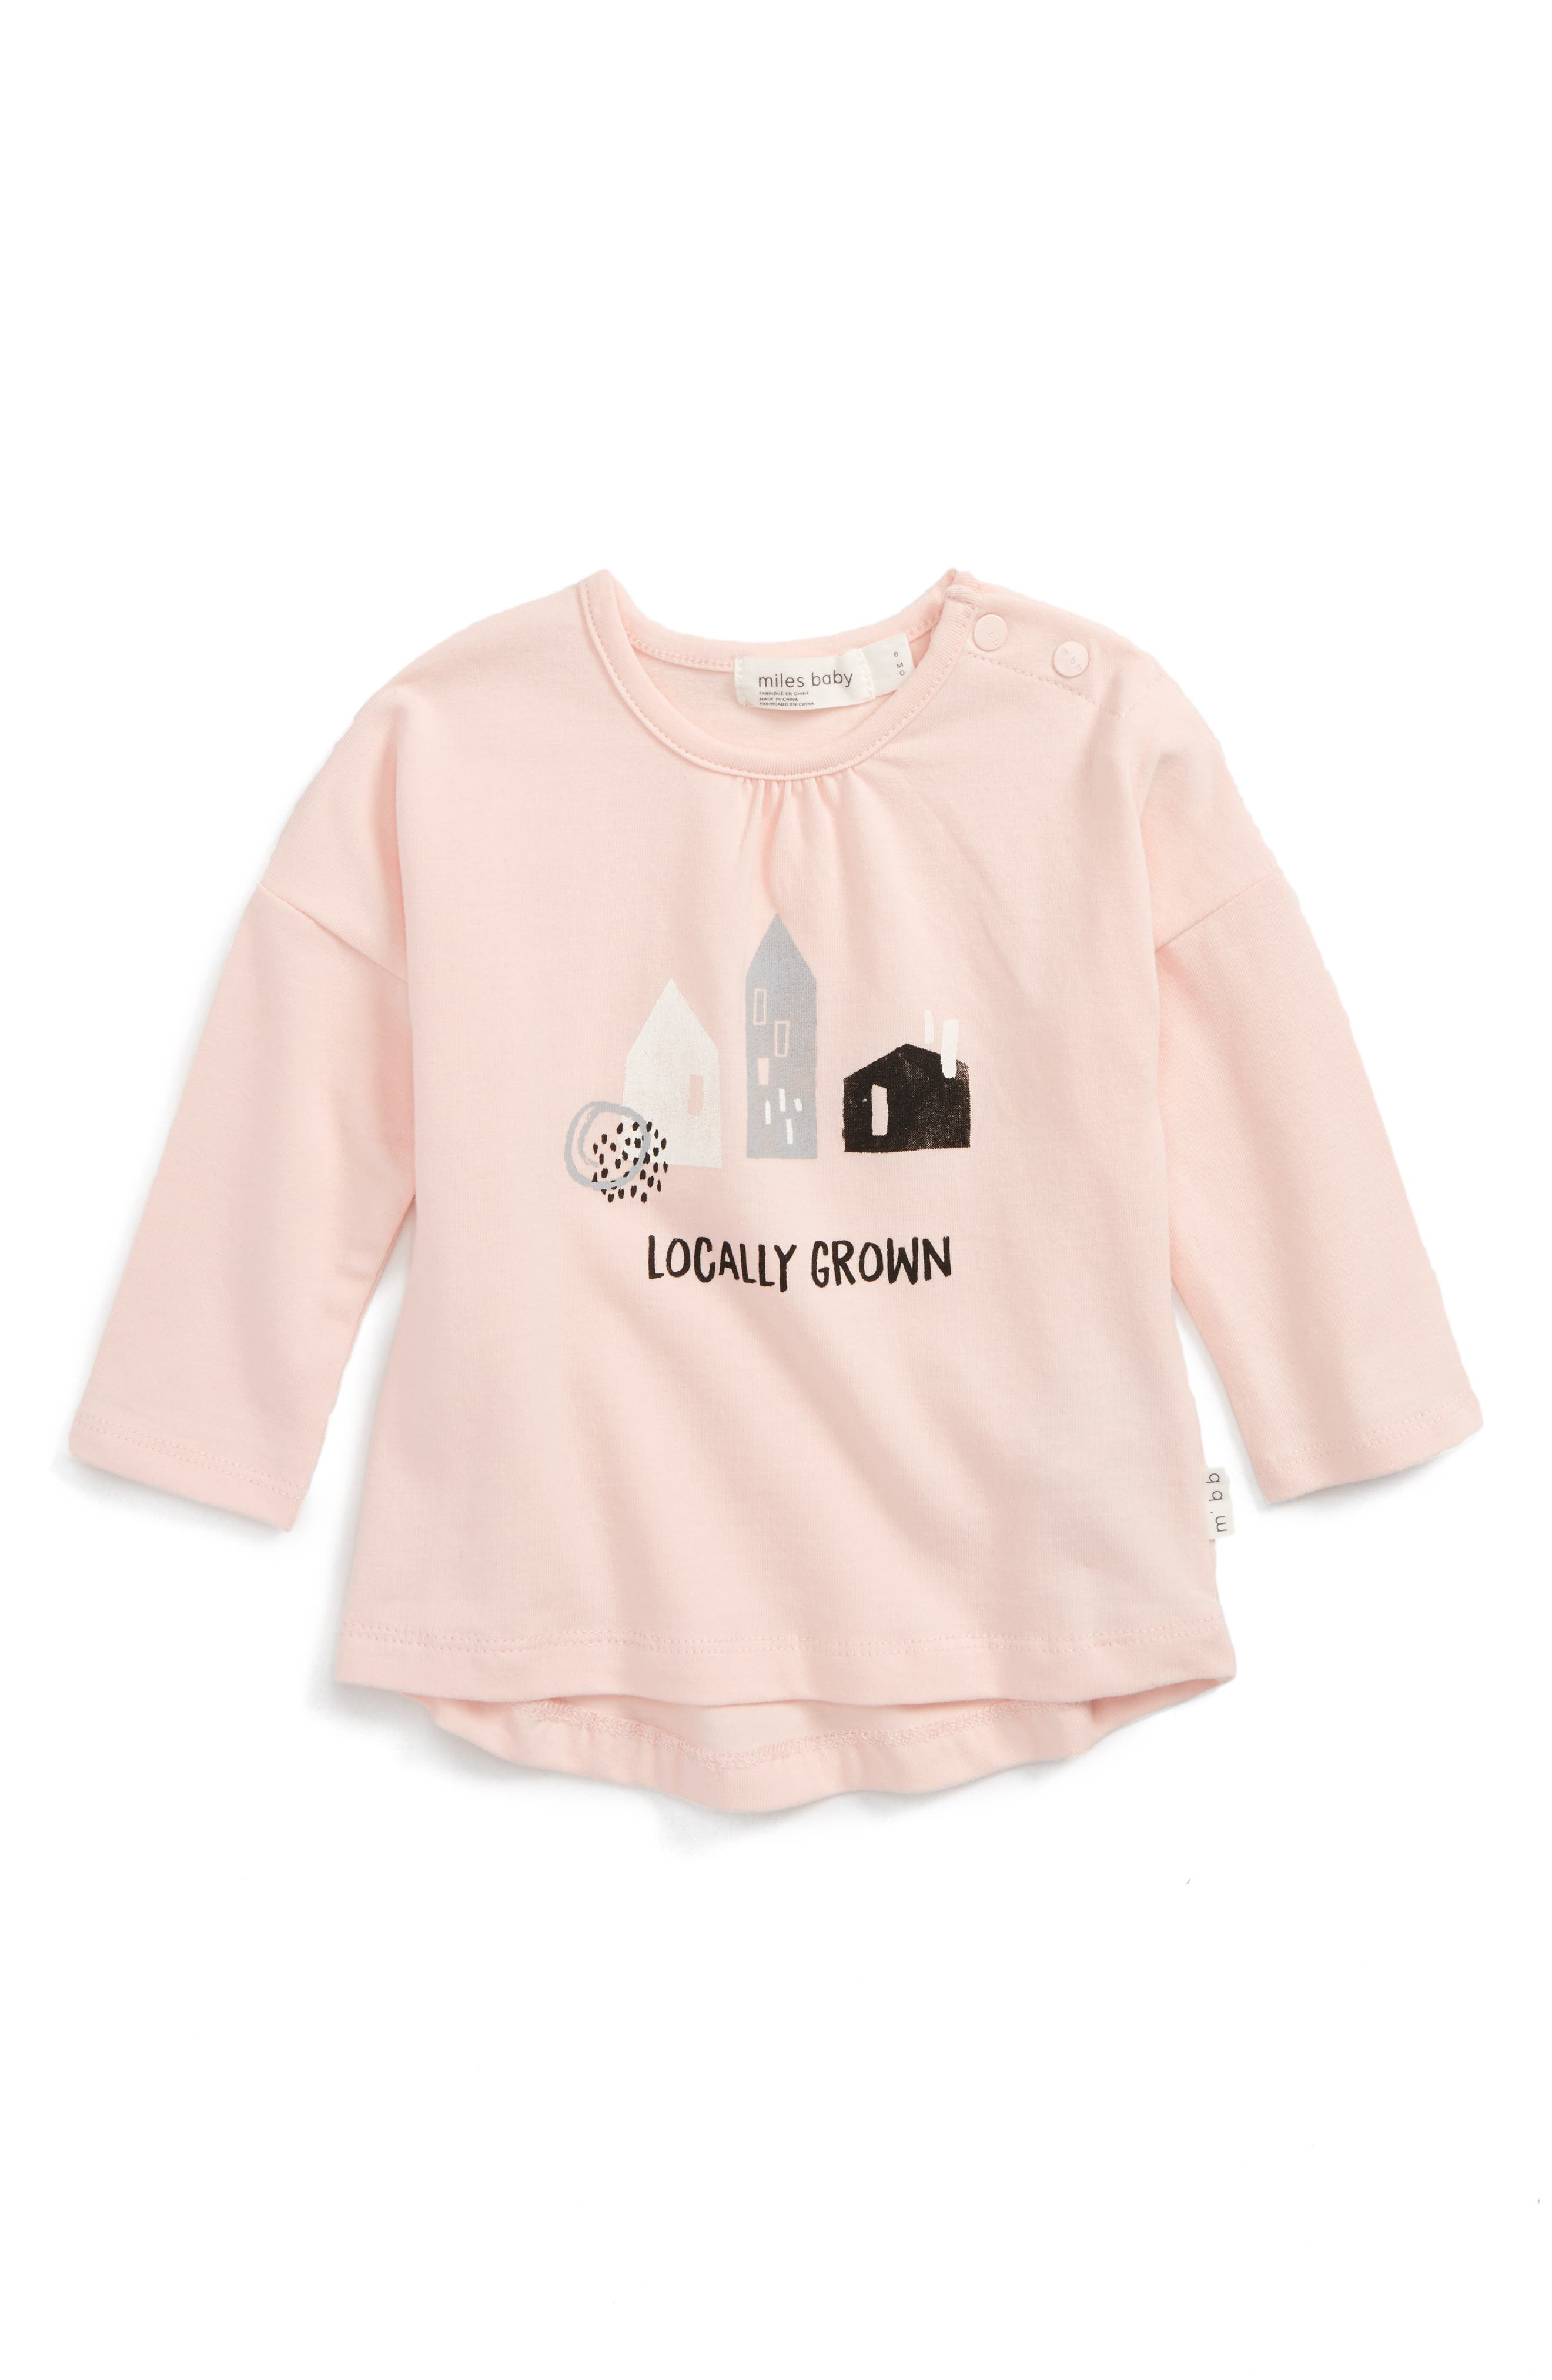 Miles Baby Locally Grown Tee (Baby Girls)